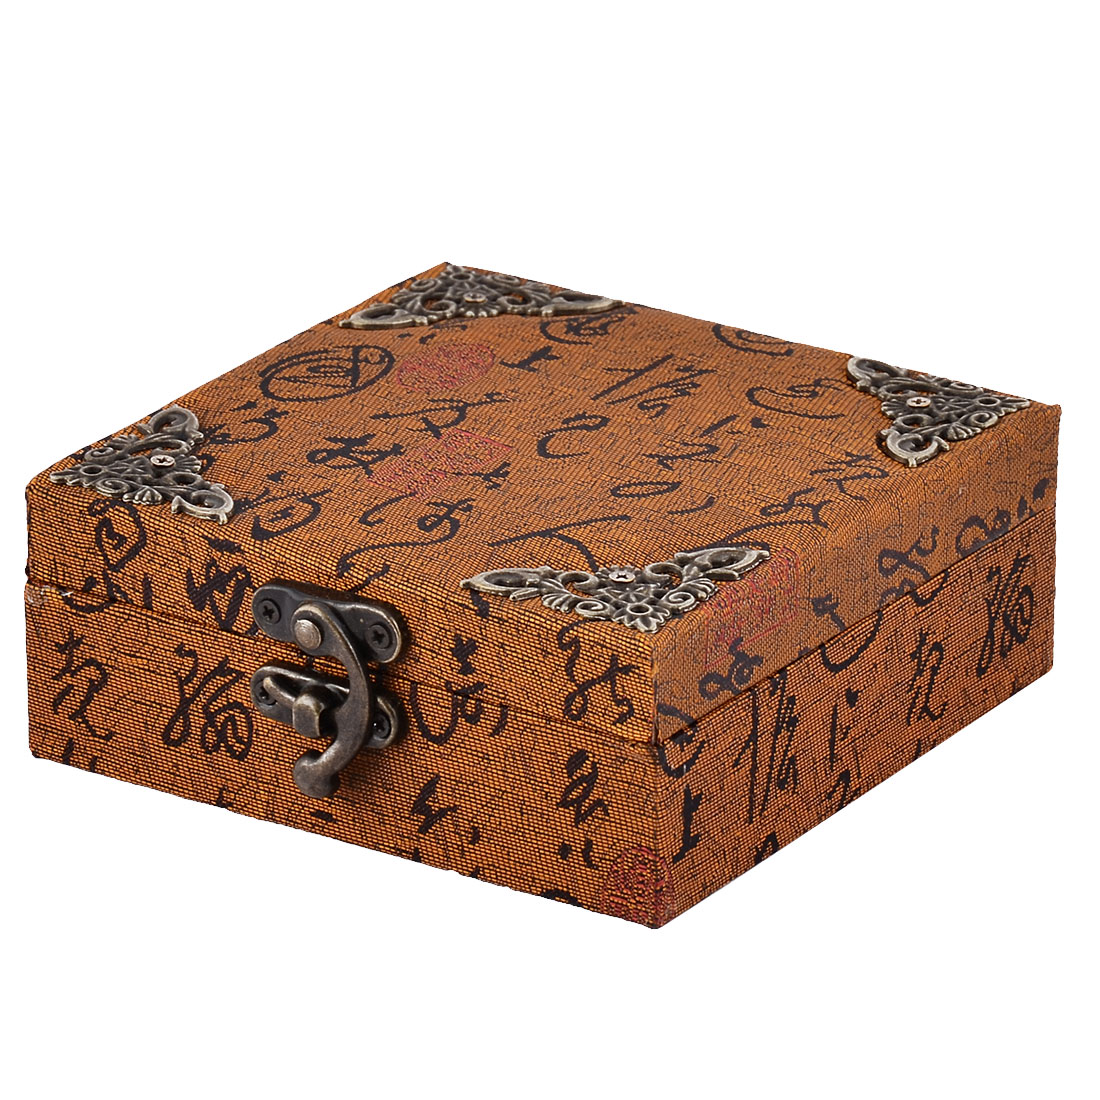 Home Wooden Vintage Style Ring Jewelry Candy Collection Locked Box Organizer